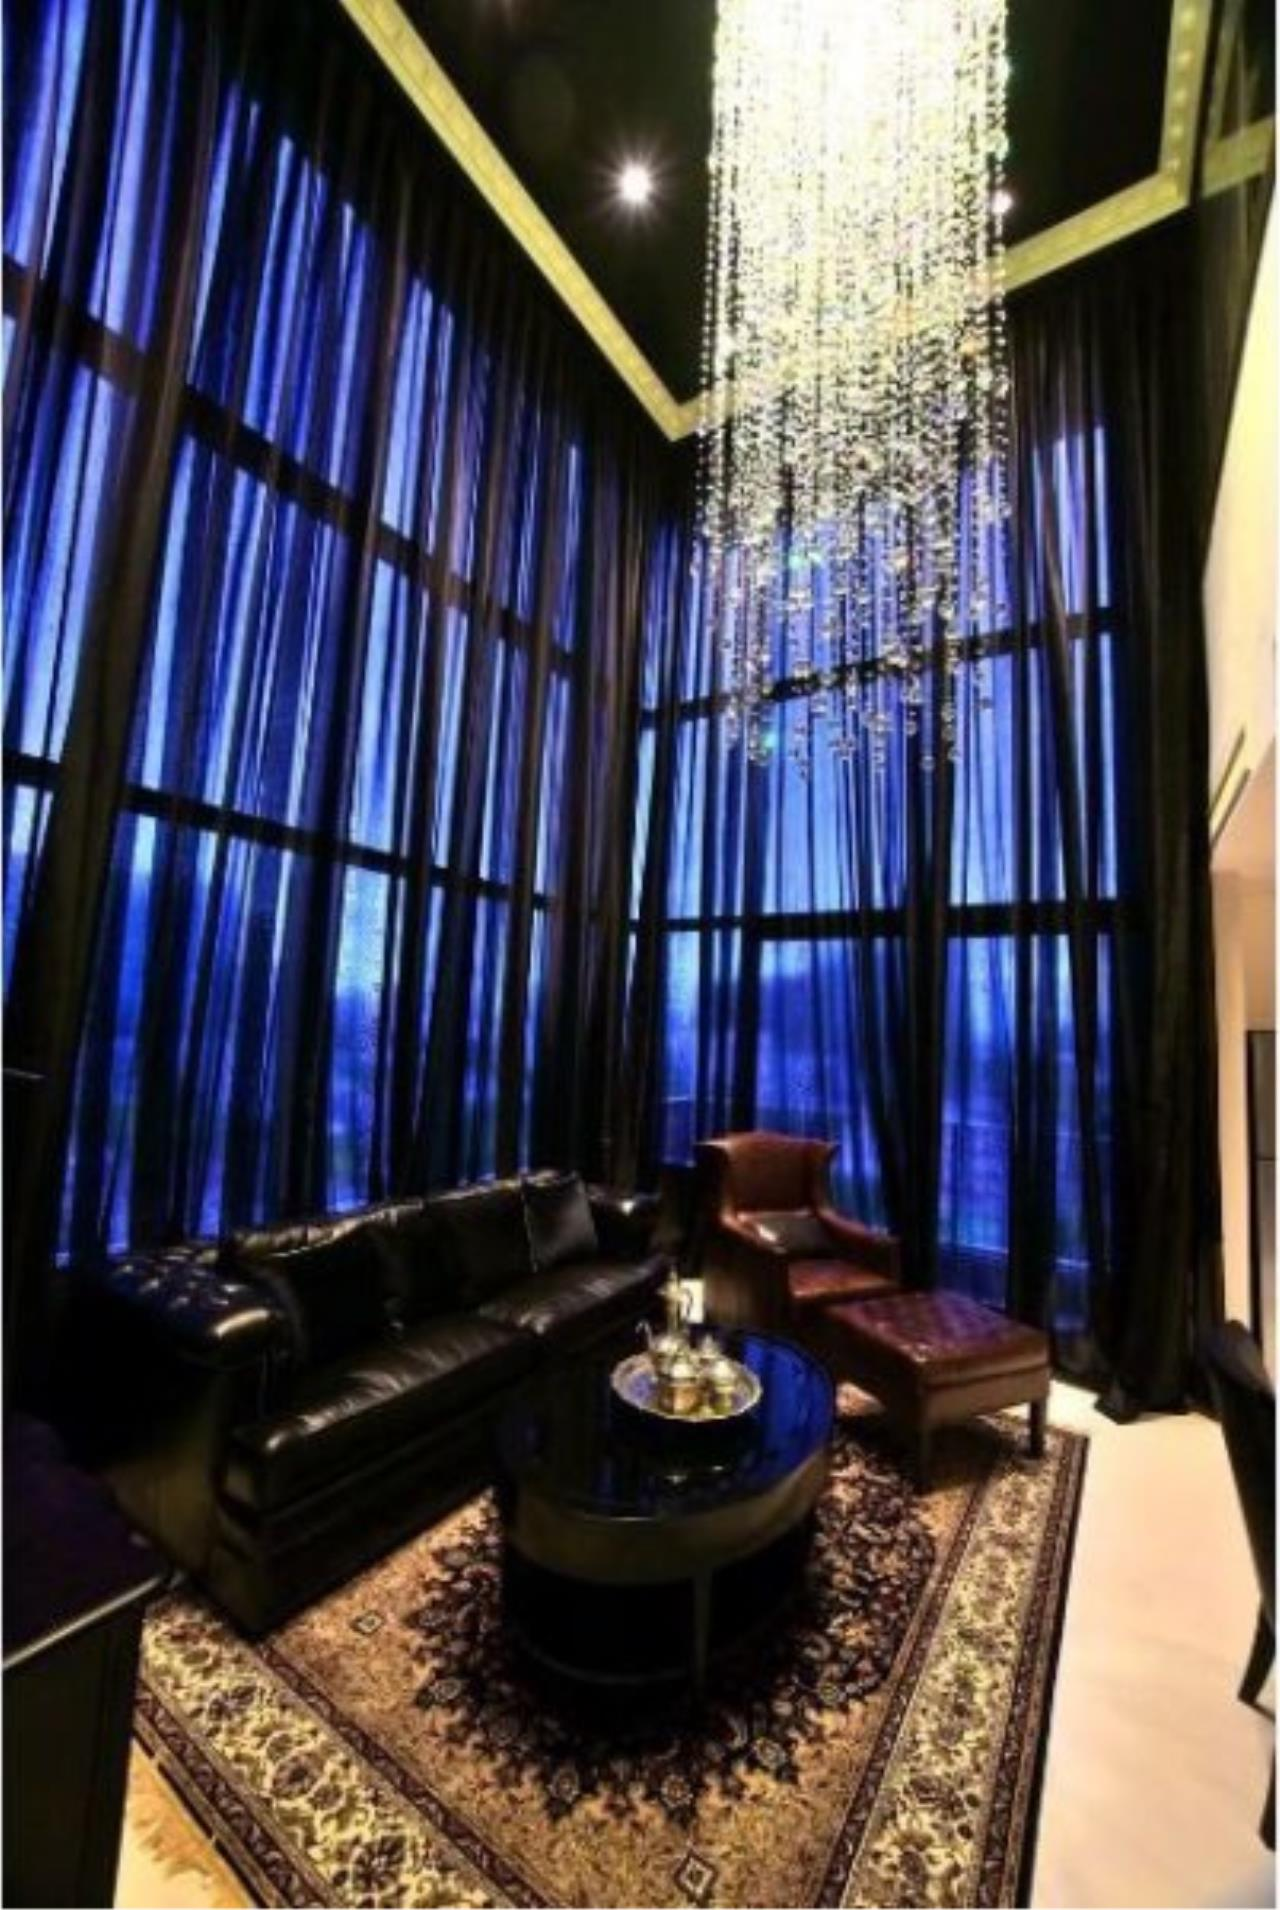 Piri Property Agency's Luxury 2 Bedrooms in the Emporio Place Condo for rent on high floor 5